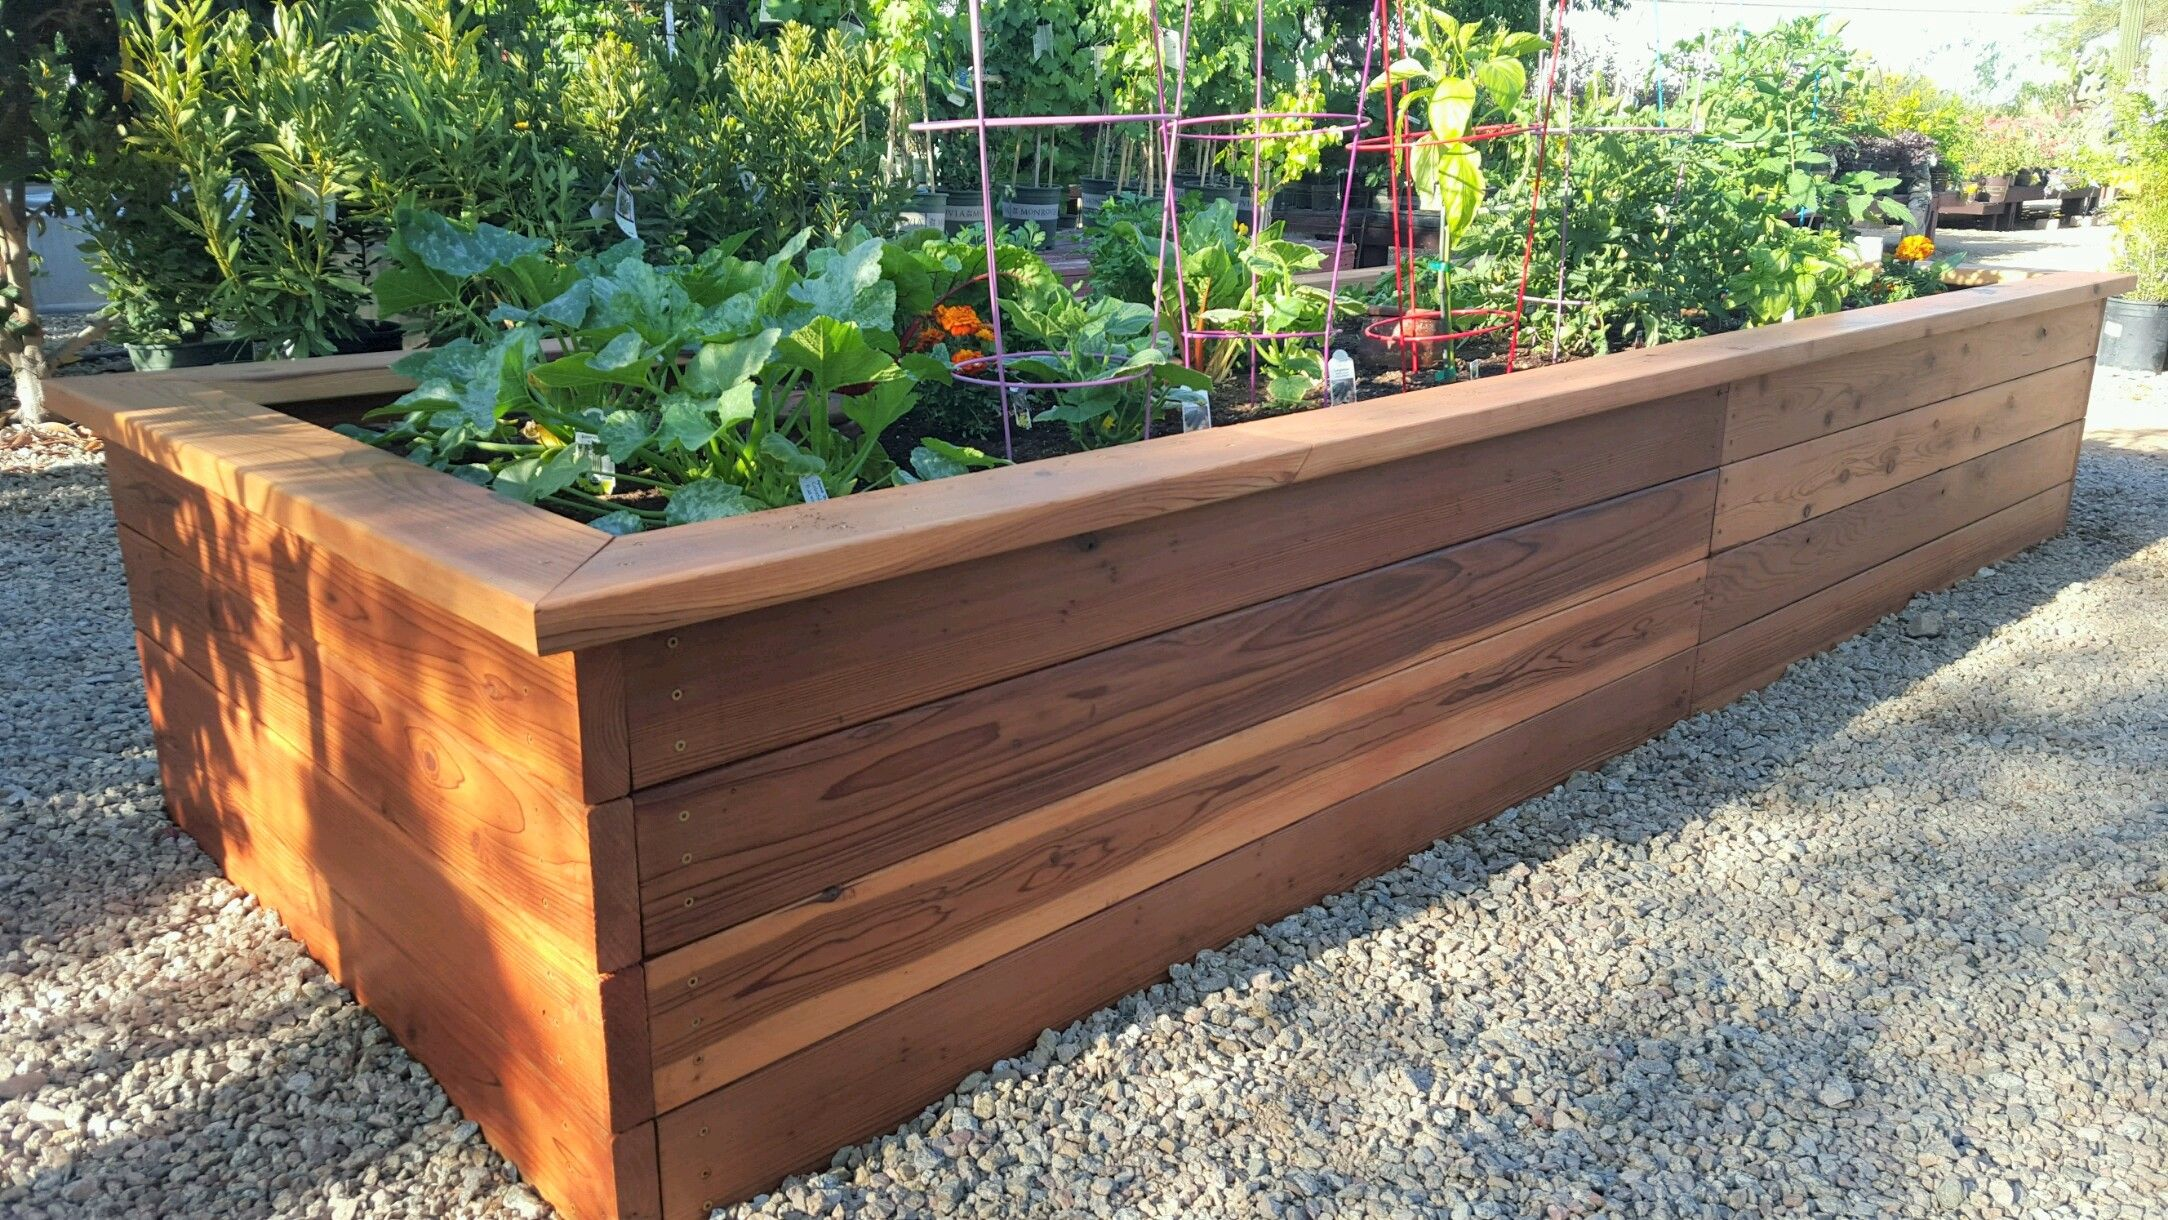 Redwood Raised Garden Bed With Images Self Watering Planter Raised Garden Raised Garden Beds